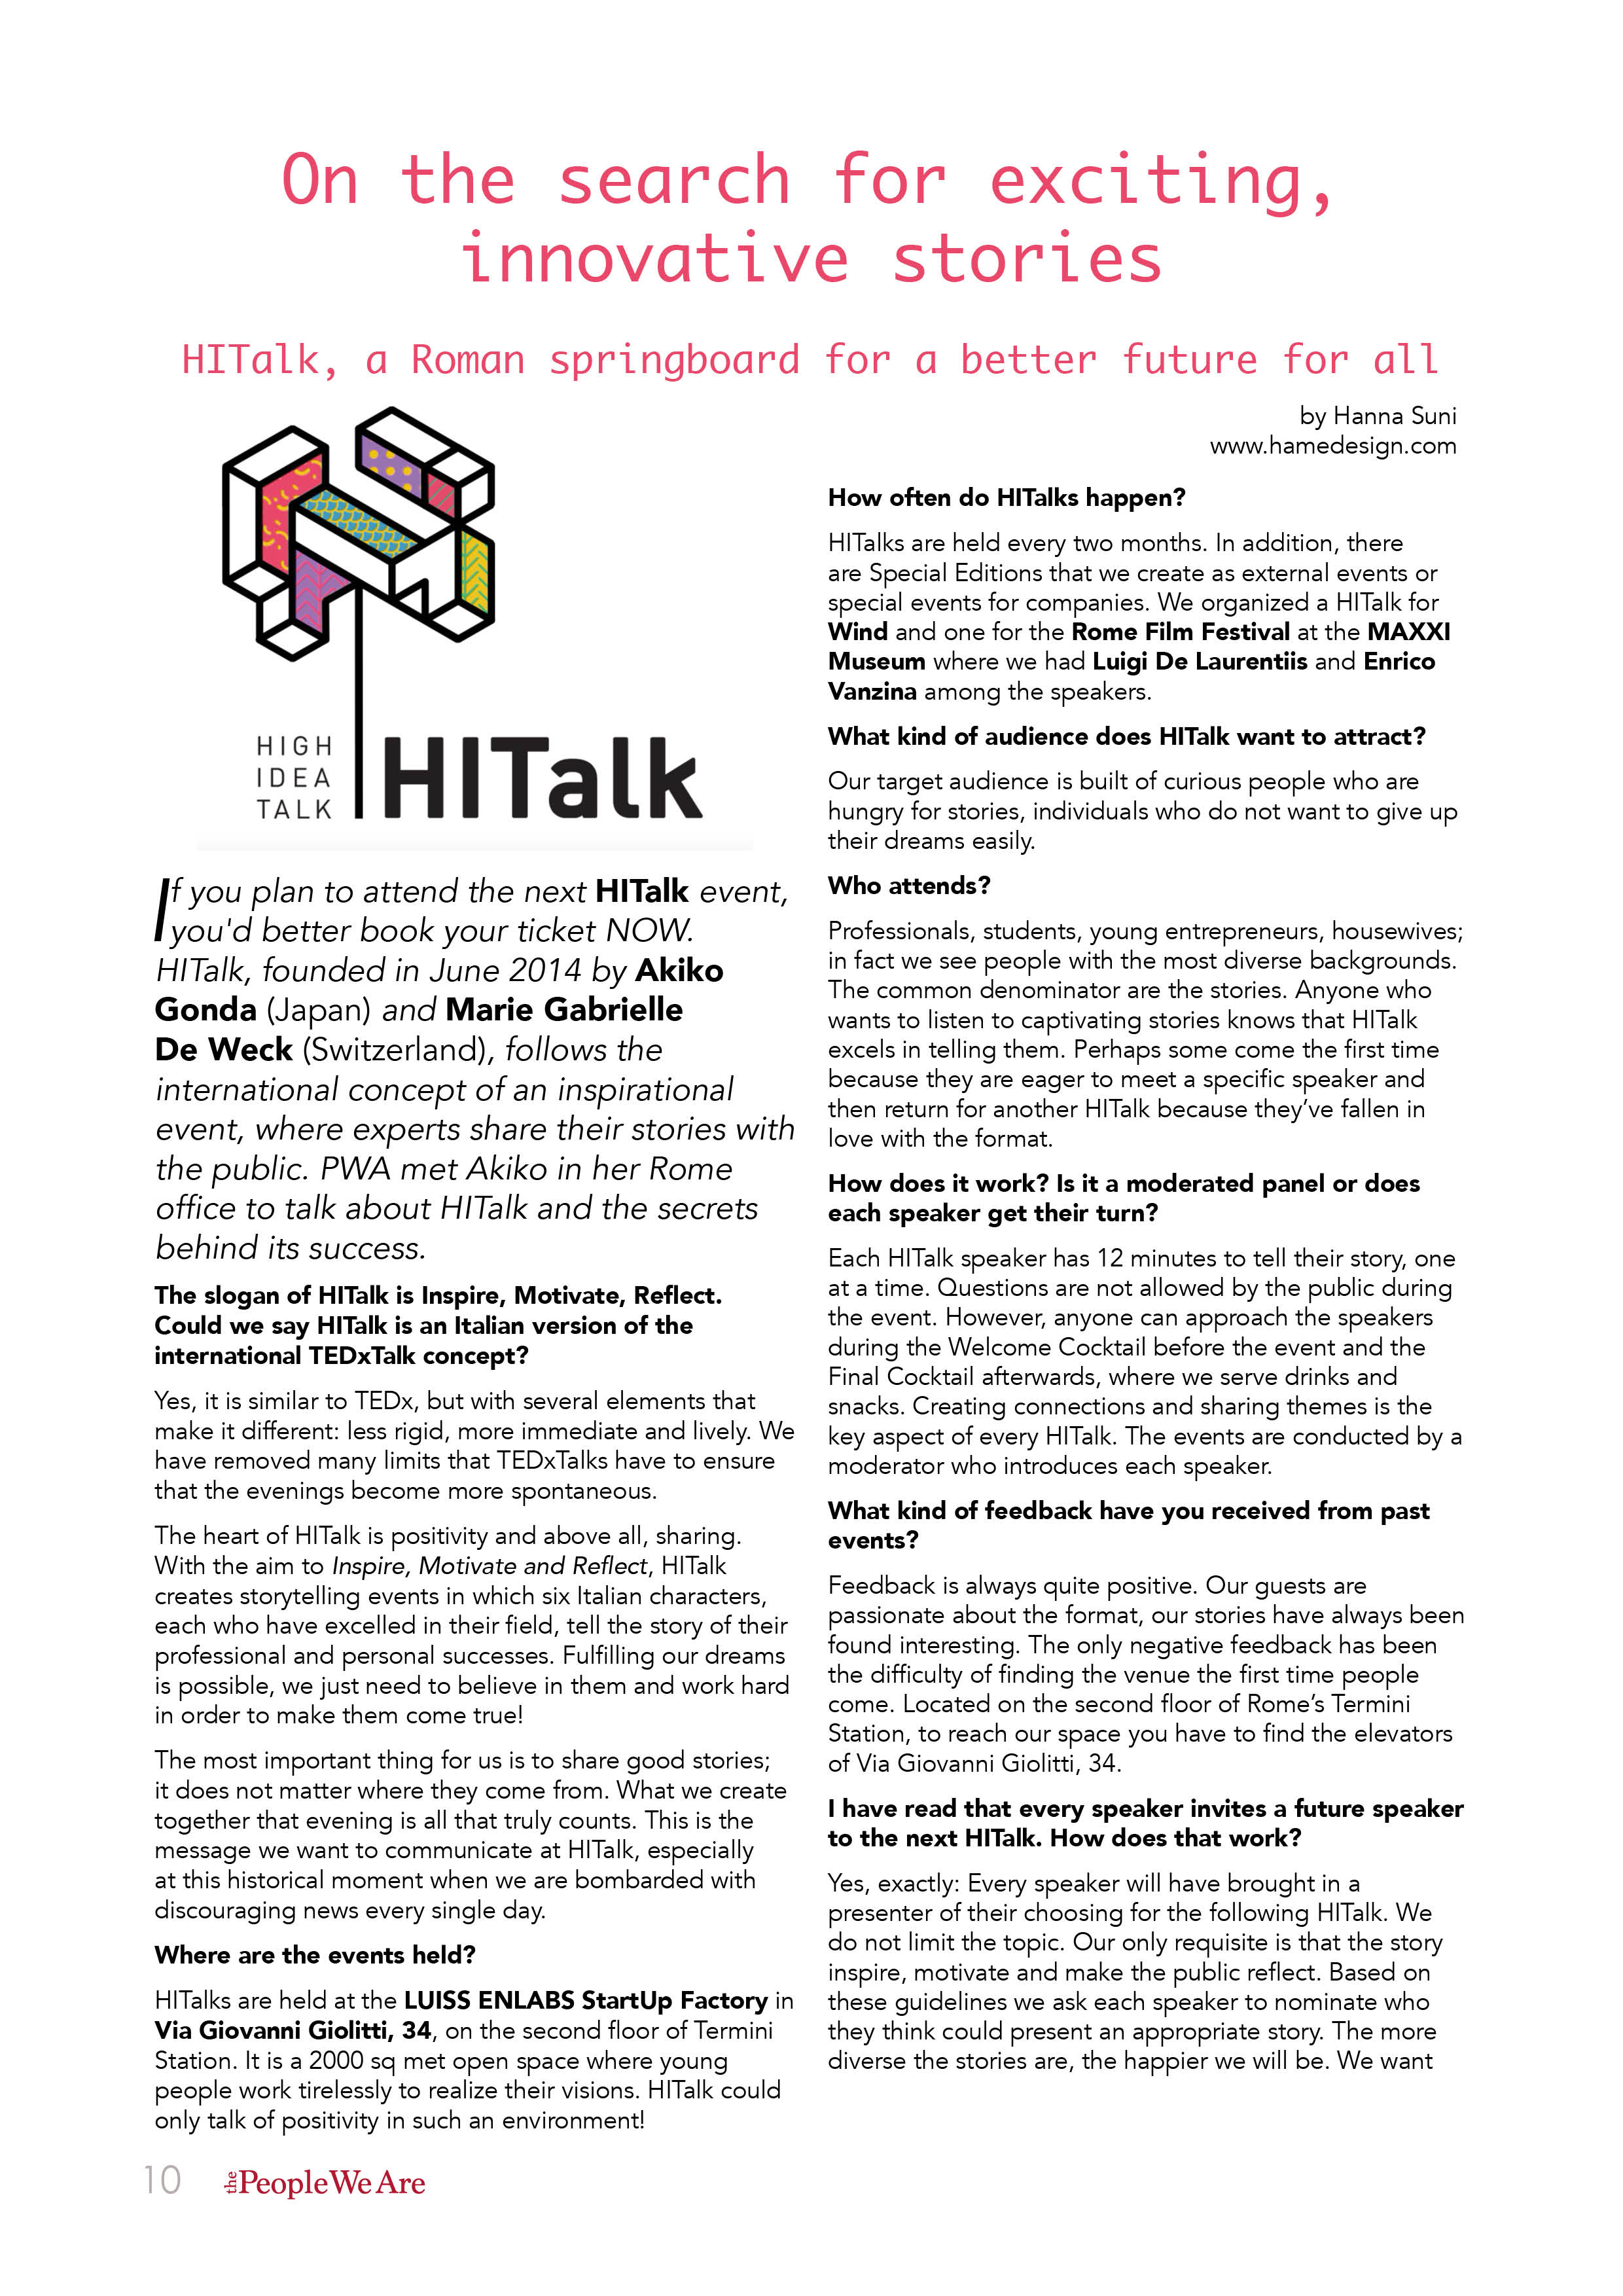 The People We Are January 2016 HITalk10